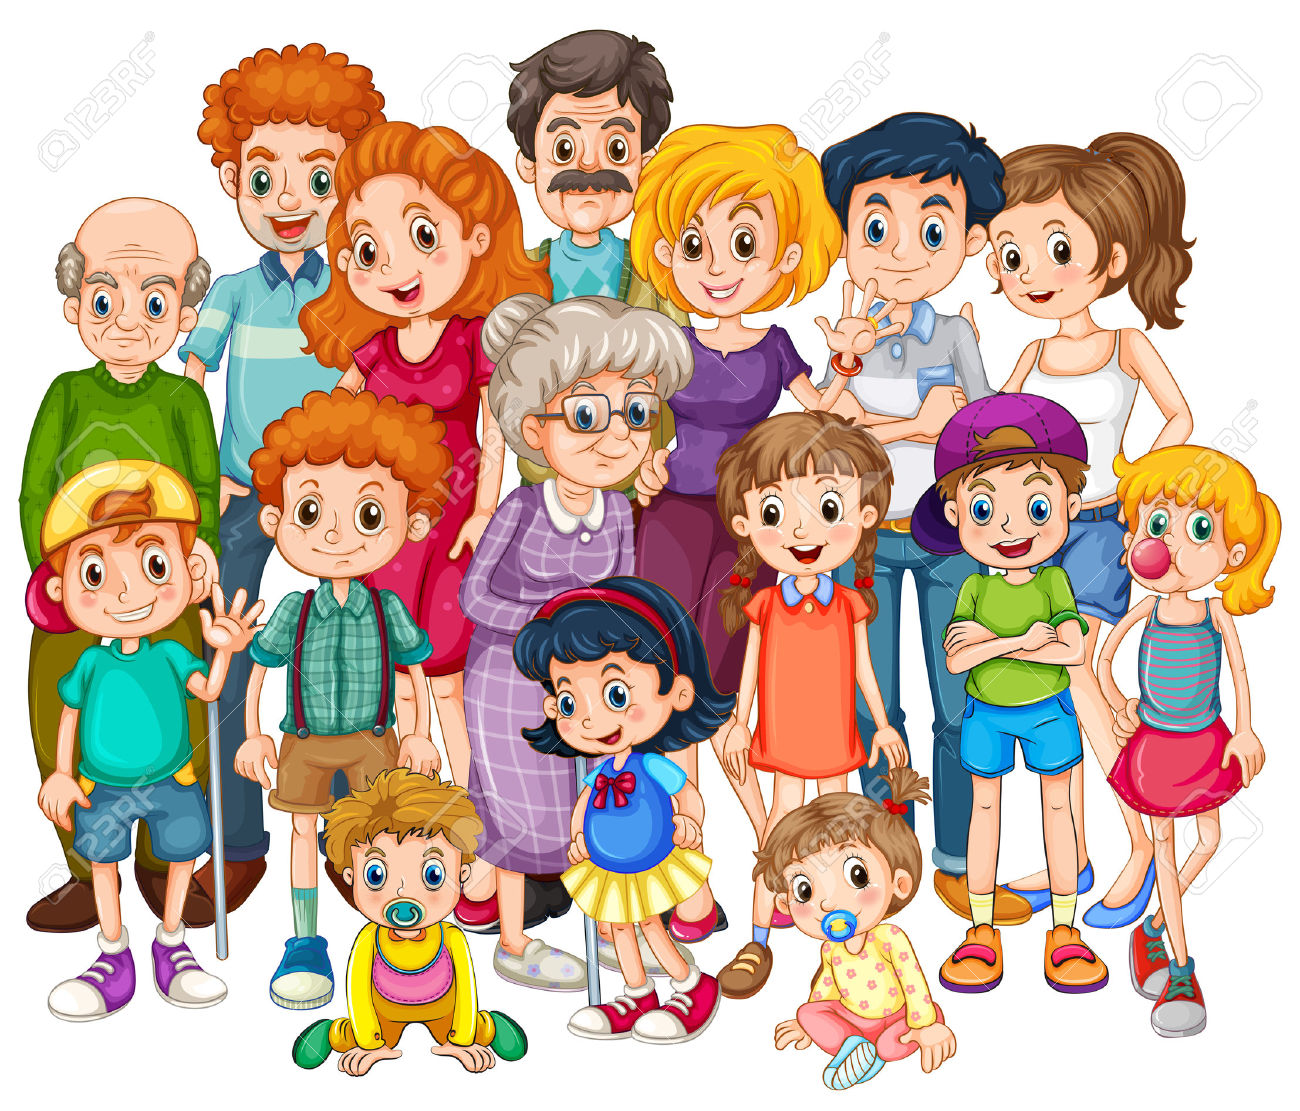 One big happy family clipart.